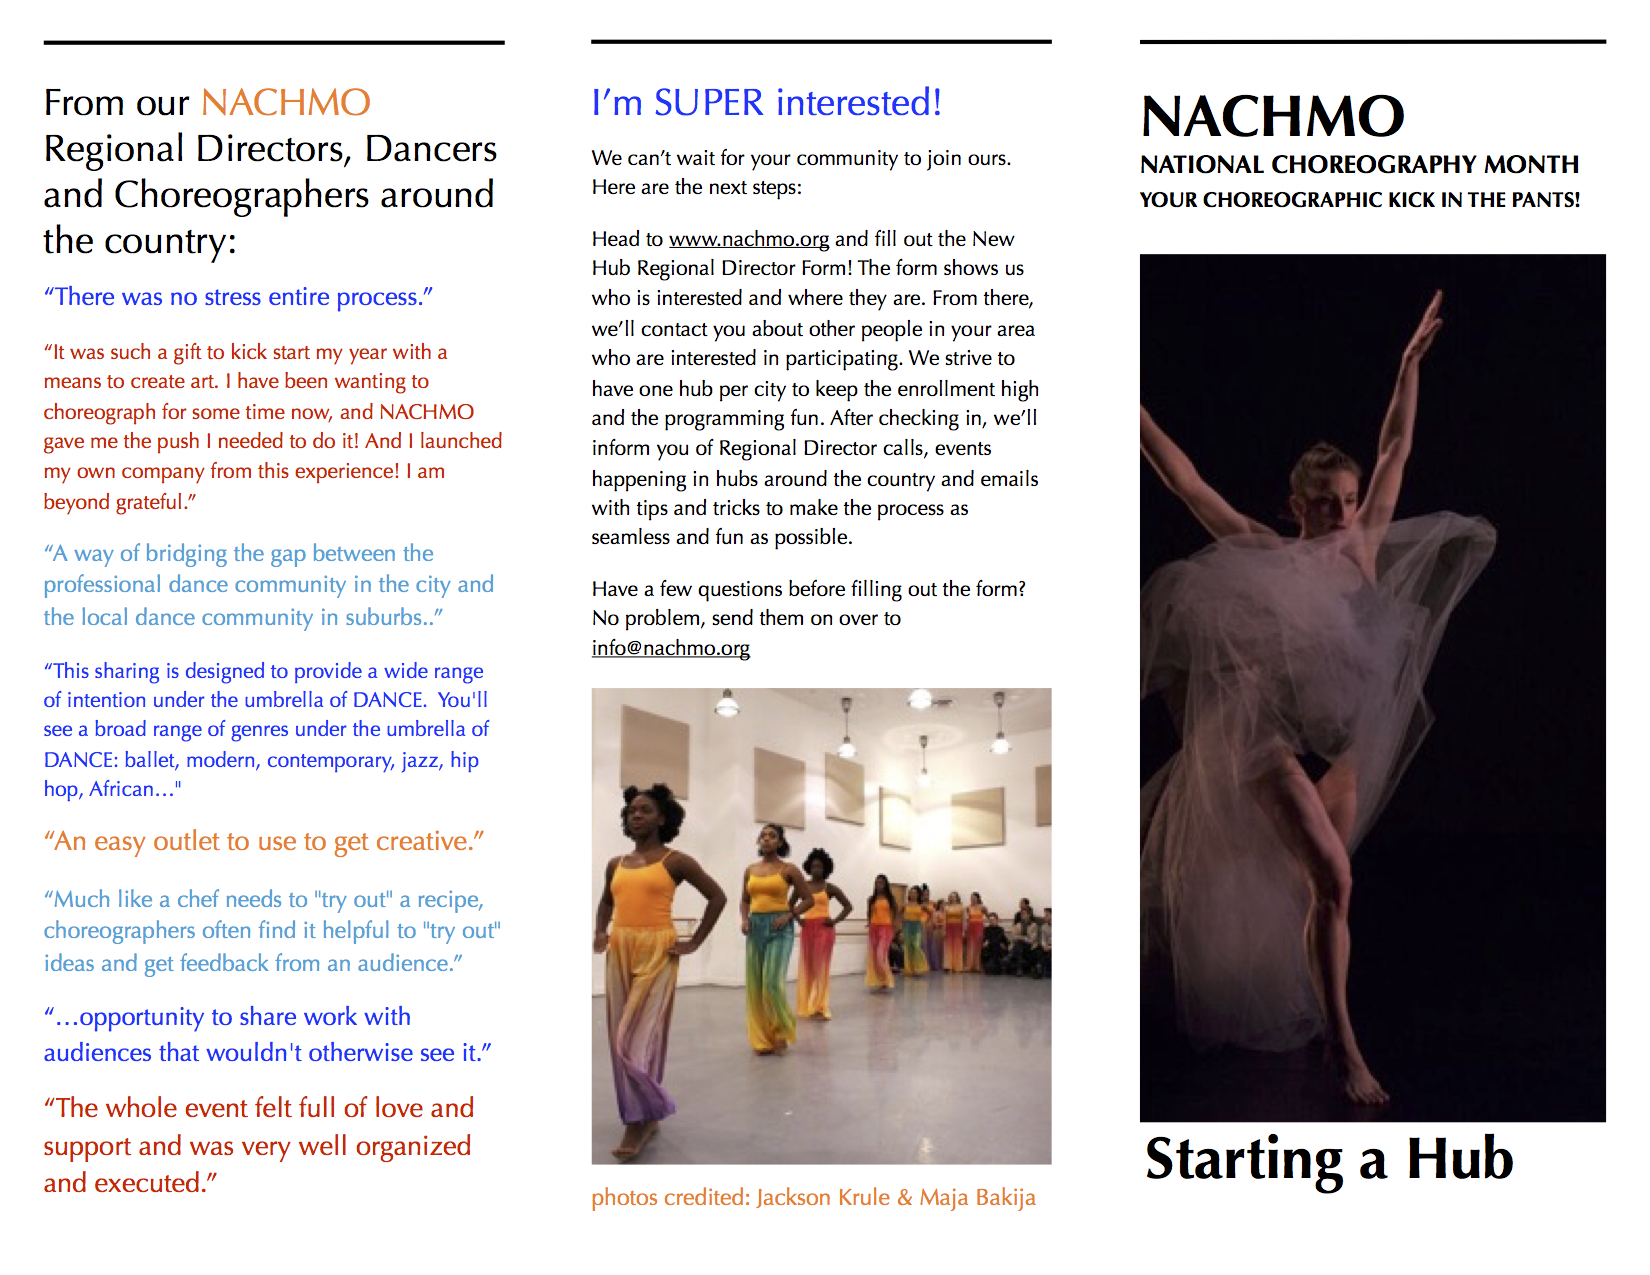 NACHMO Starting A Hub Brochure 11copy.jpg